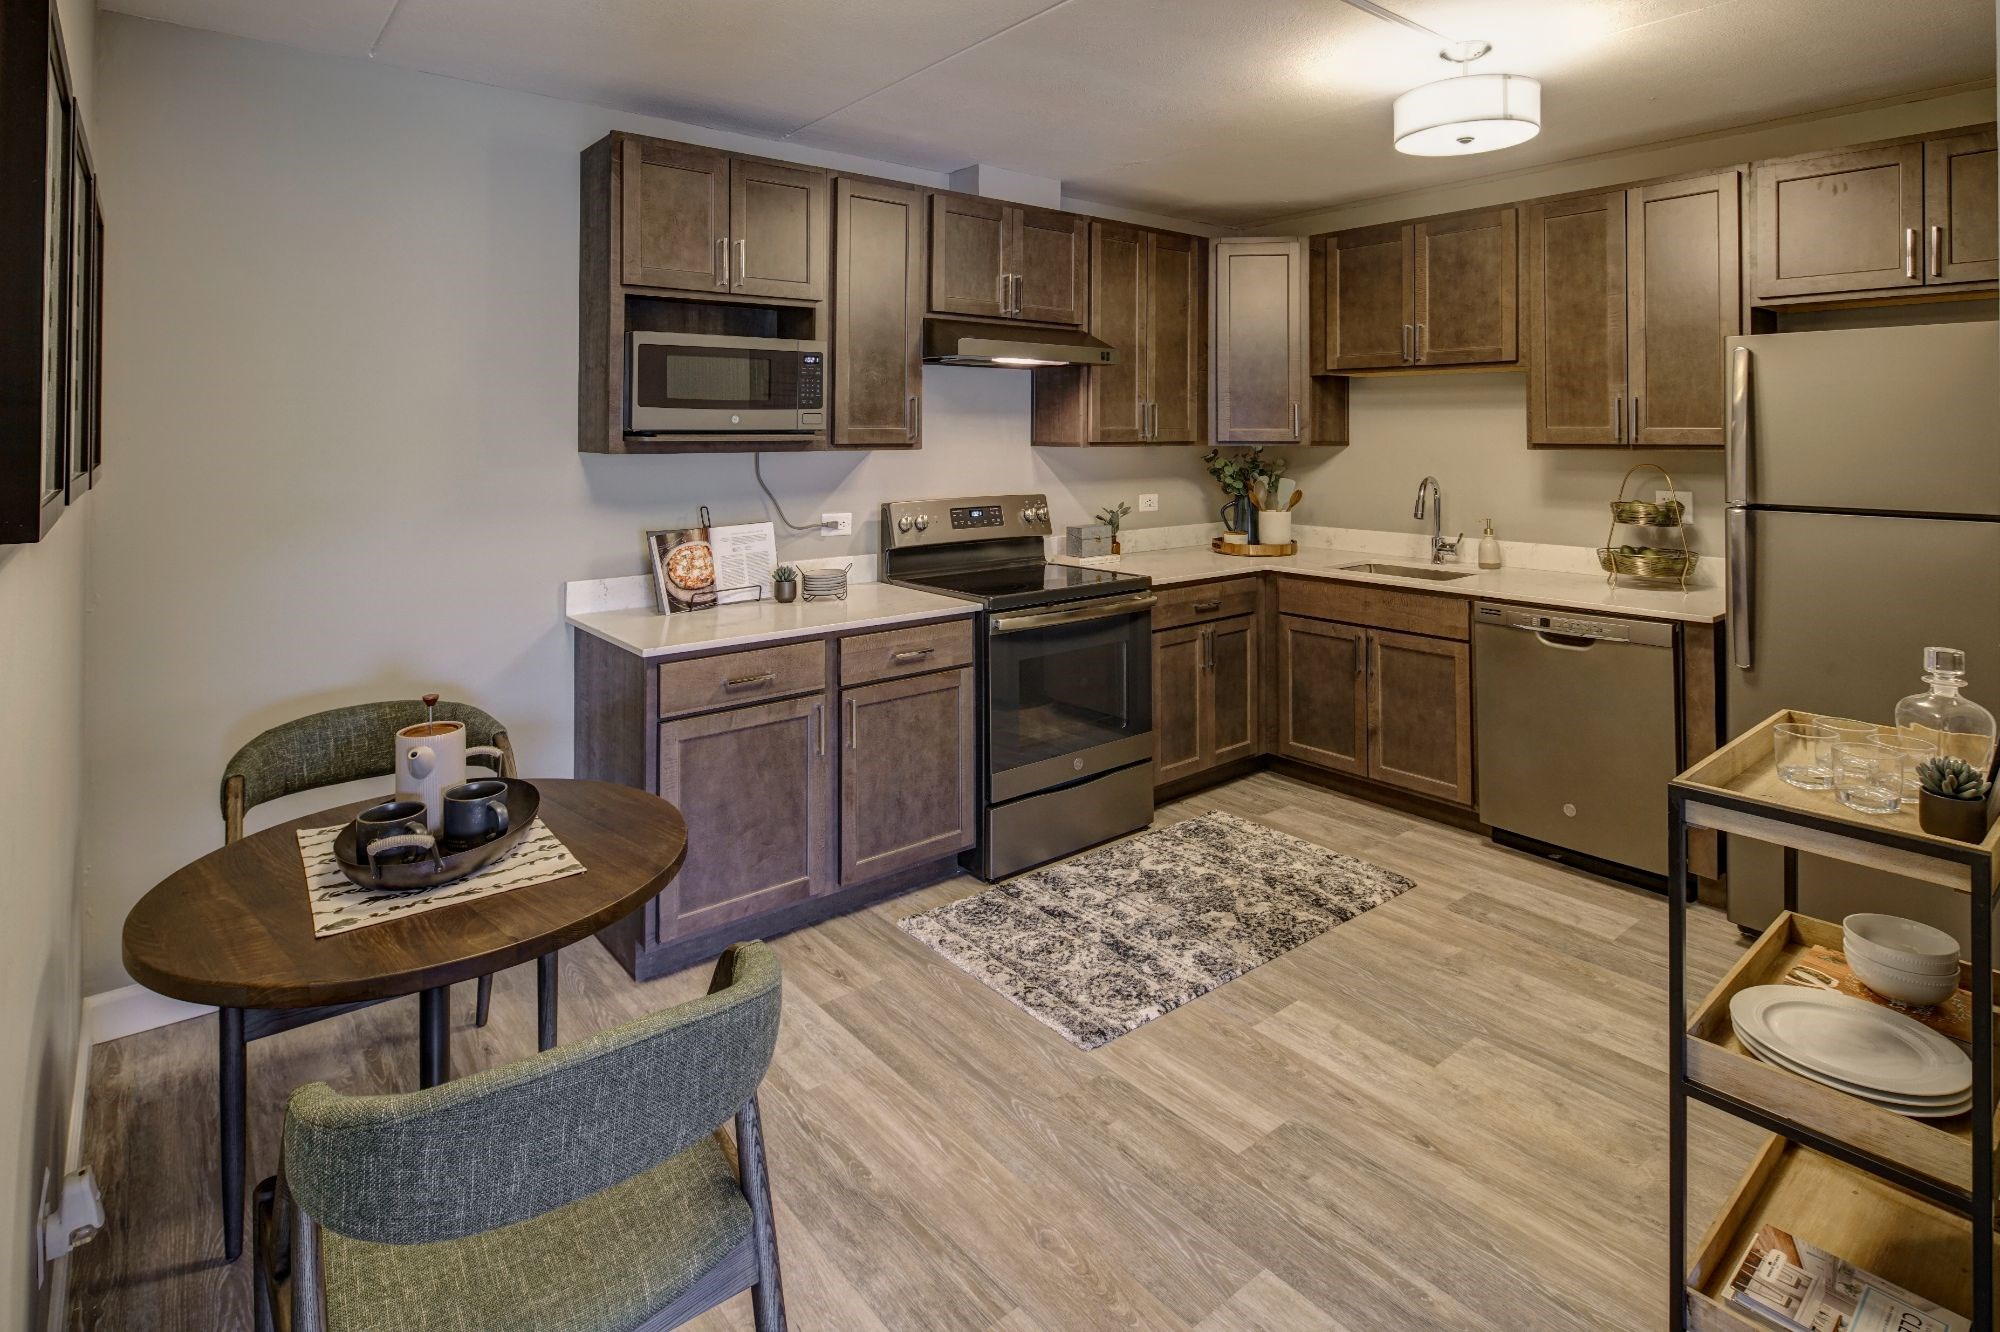 Shaker Style Wood Cabinetry, at Willow Crossing, Illinois